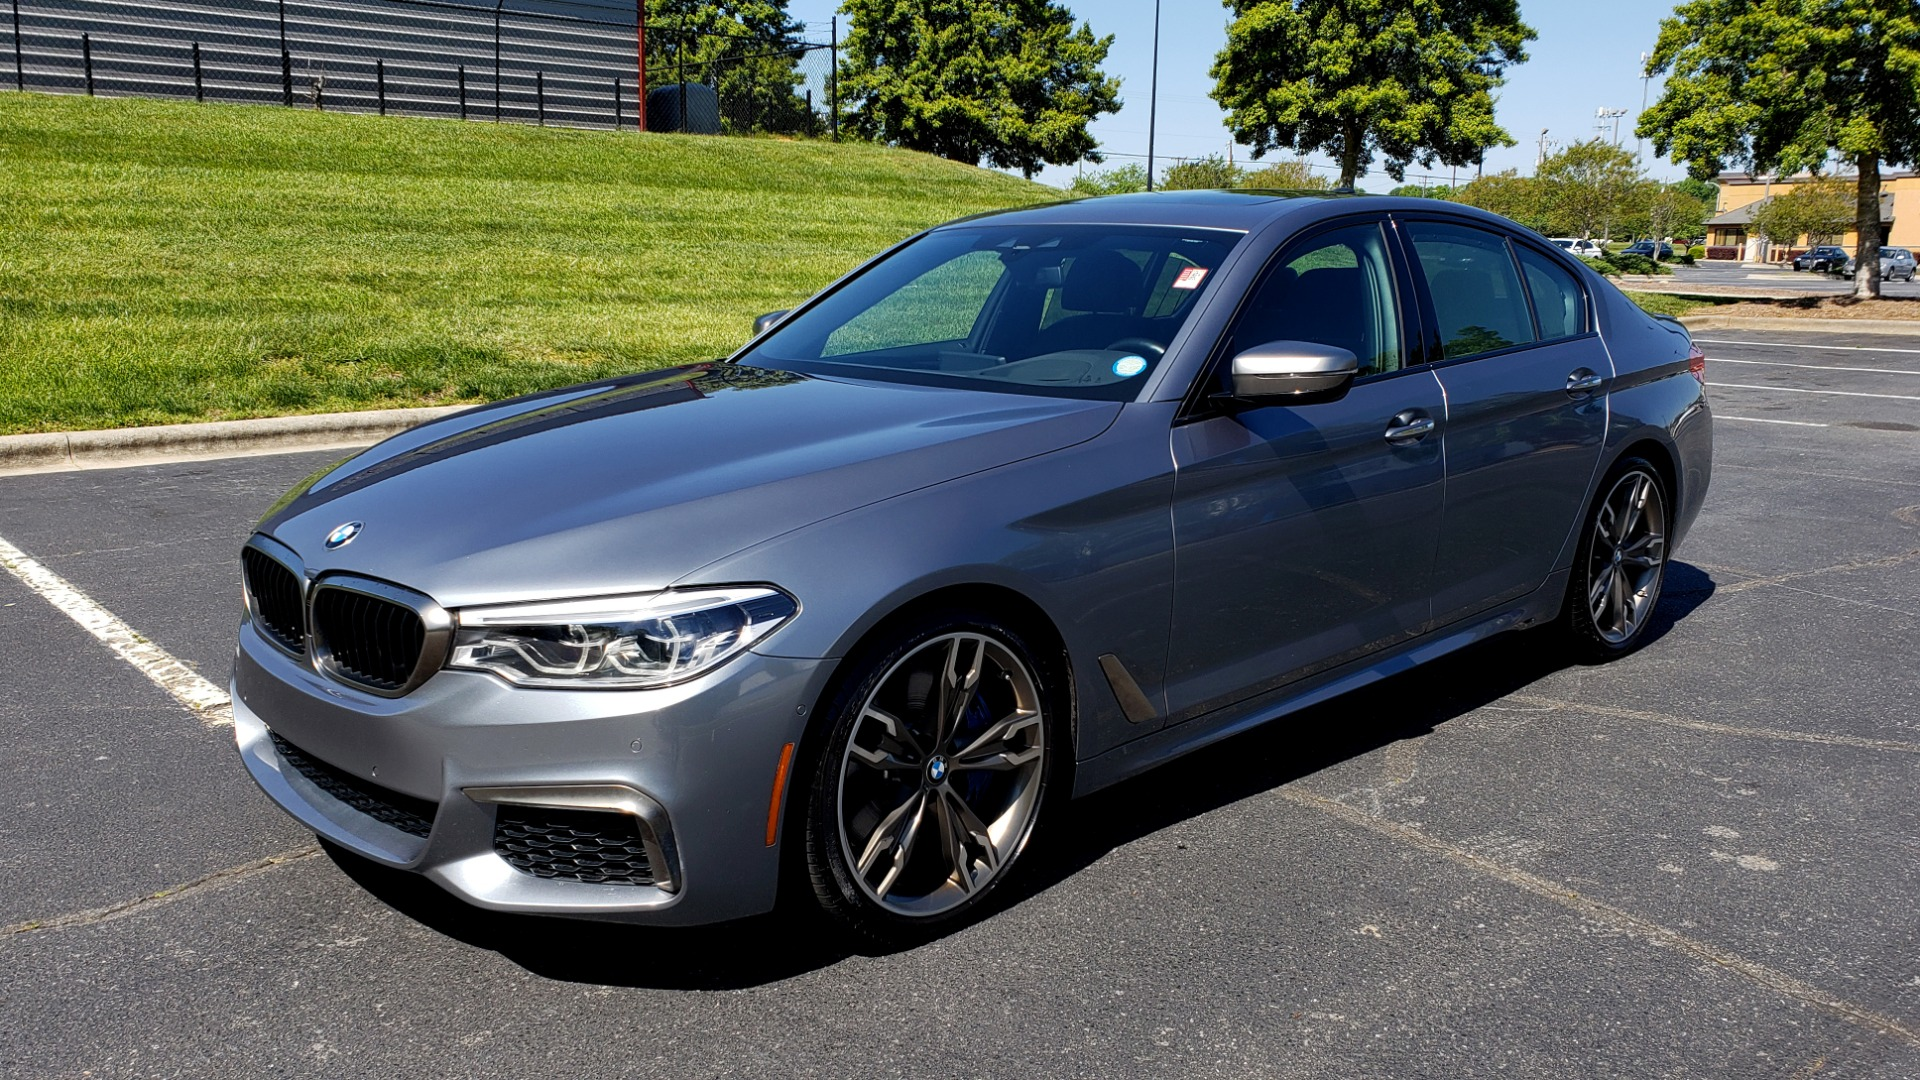 Used 2018 BMW 5 SERIES M550I XDRIVE / EXEC PKG / LUX / DRVR ASST / CLD WTHR / ACTIVE DR for sale Sold at Formula Imports in Charlotte NC 28227 1